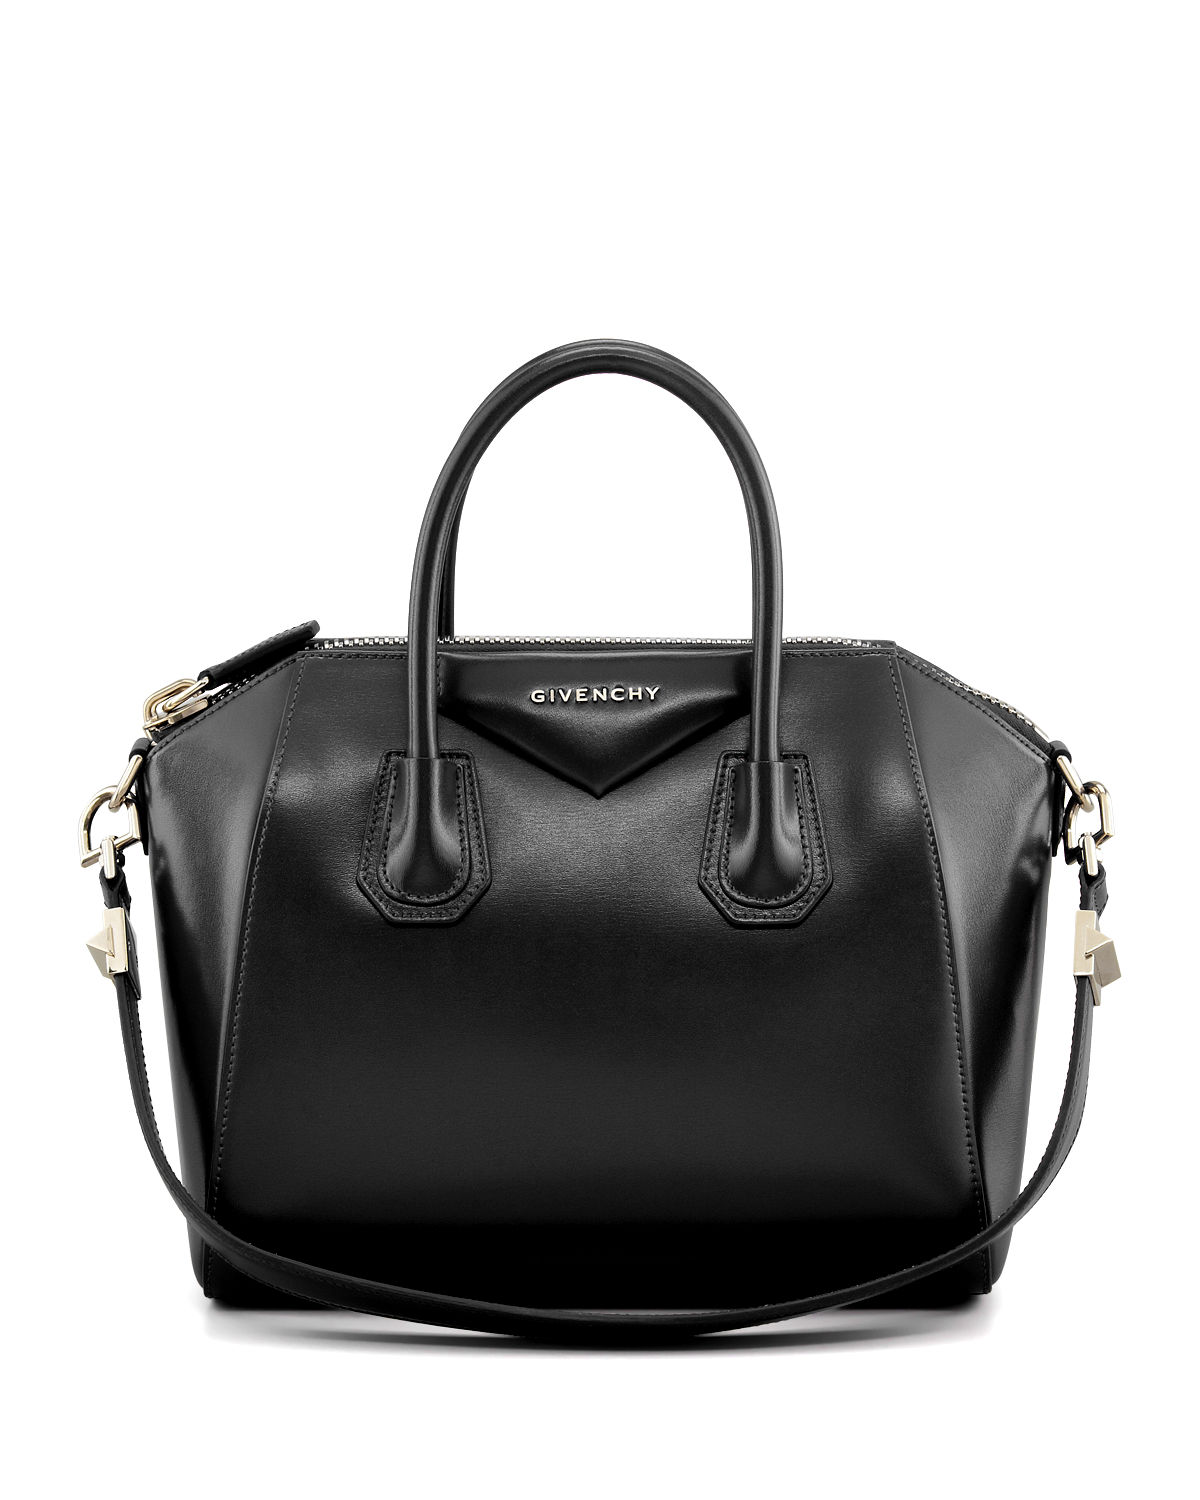 b1d863d6dd Givenchy Antigona Small Leather Satchel Bag